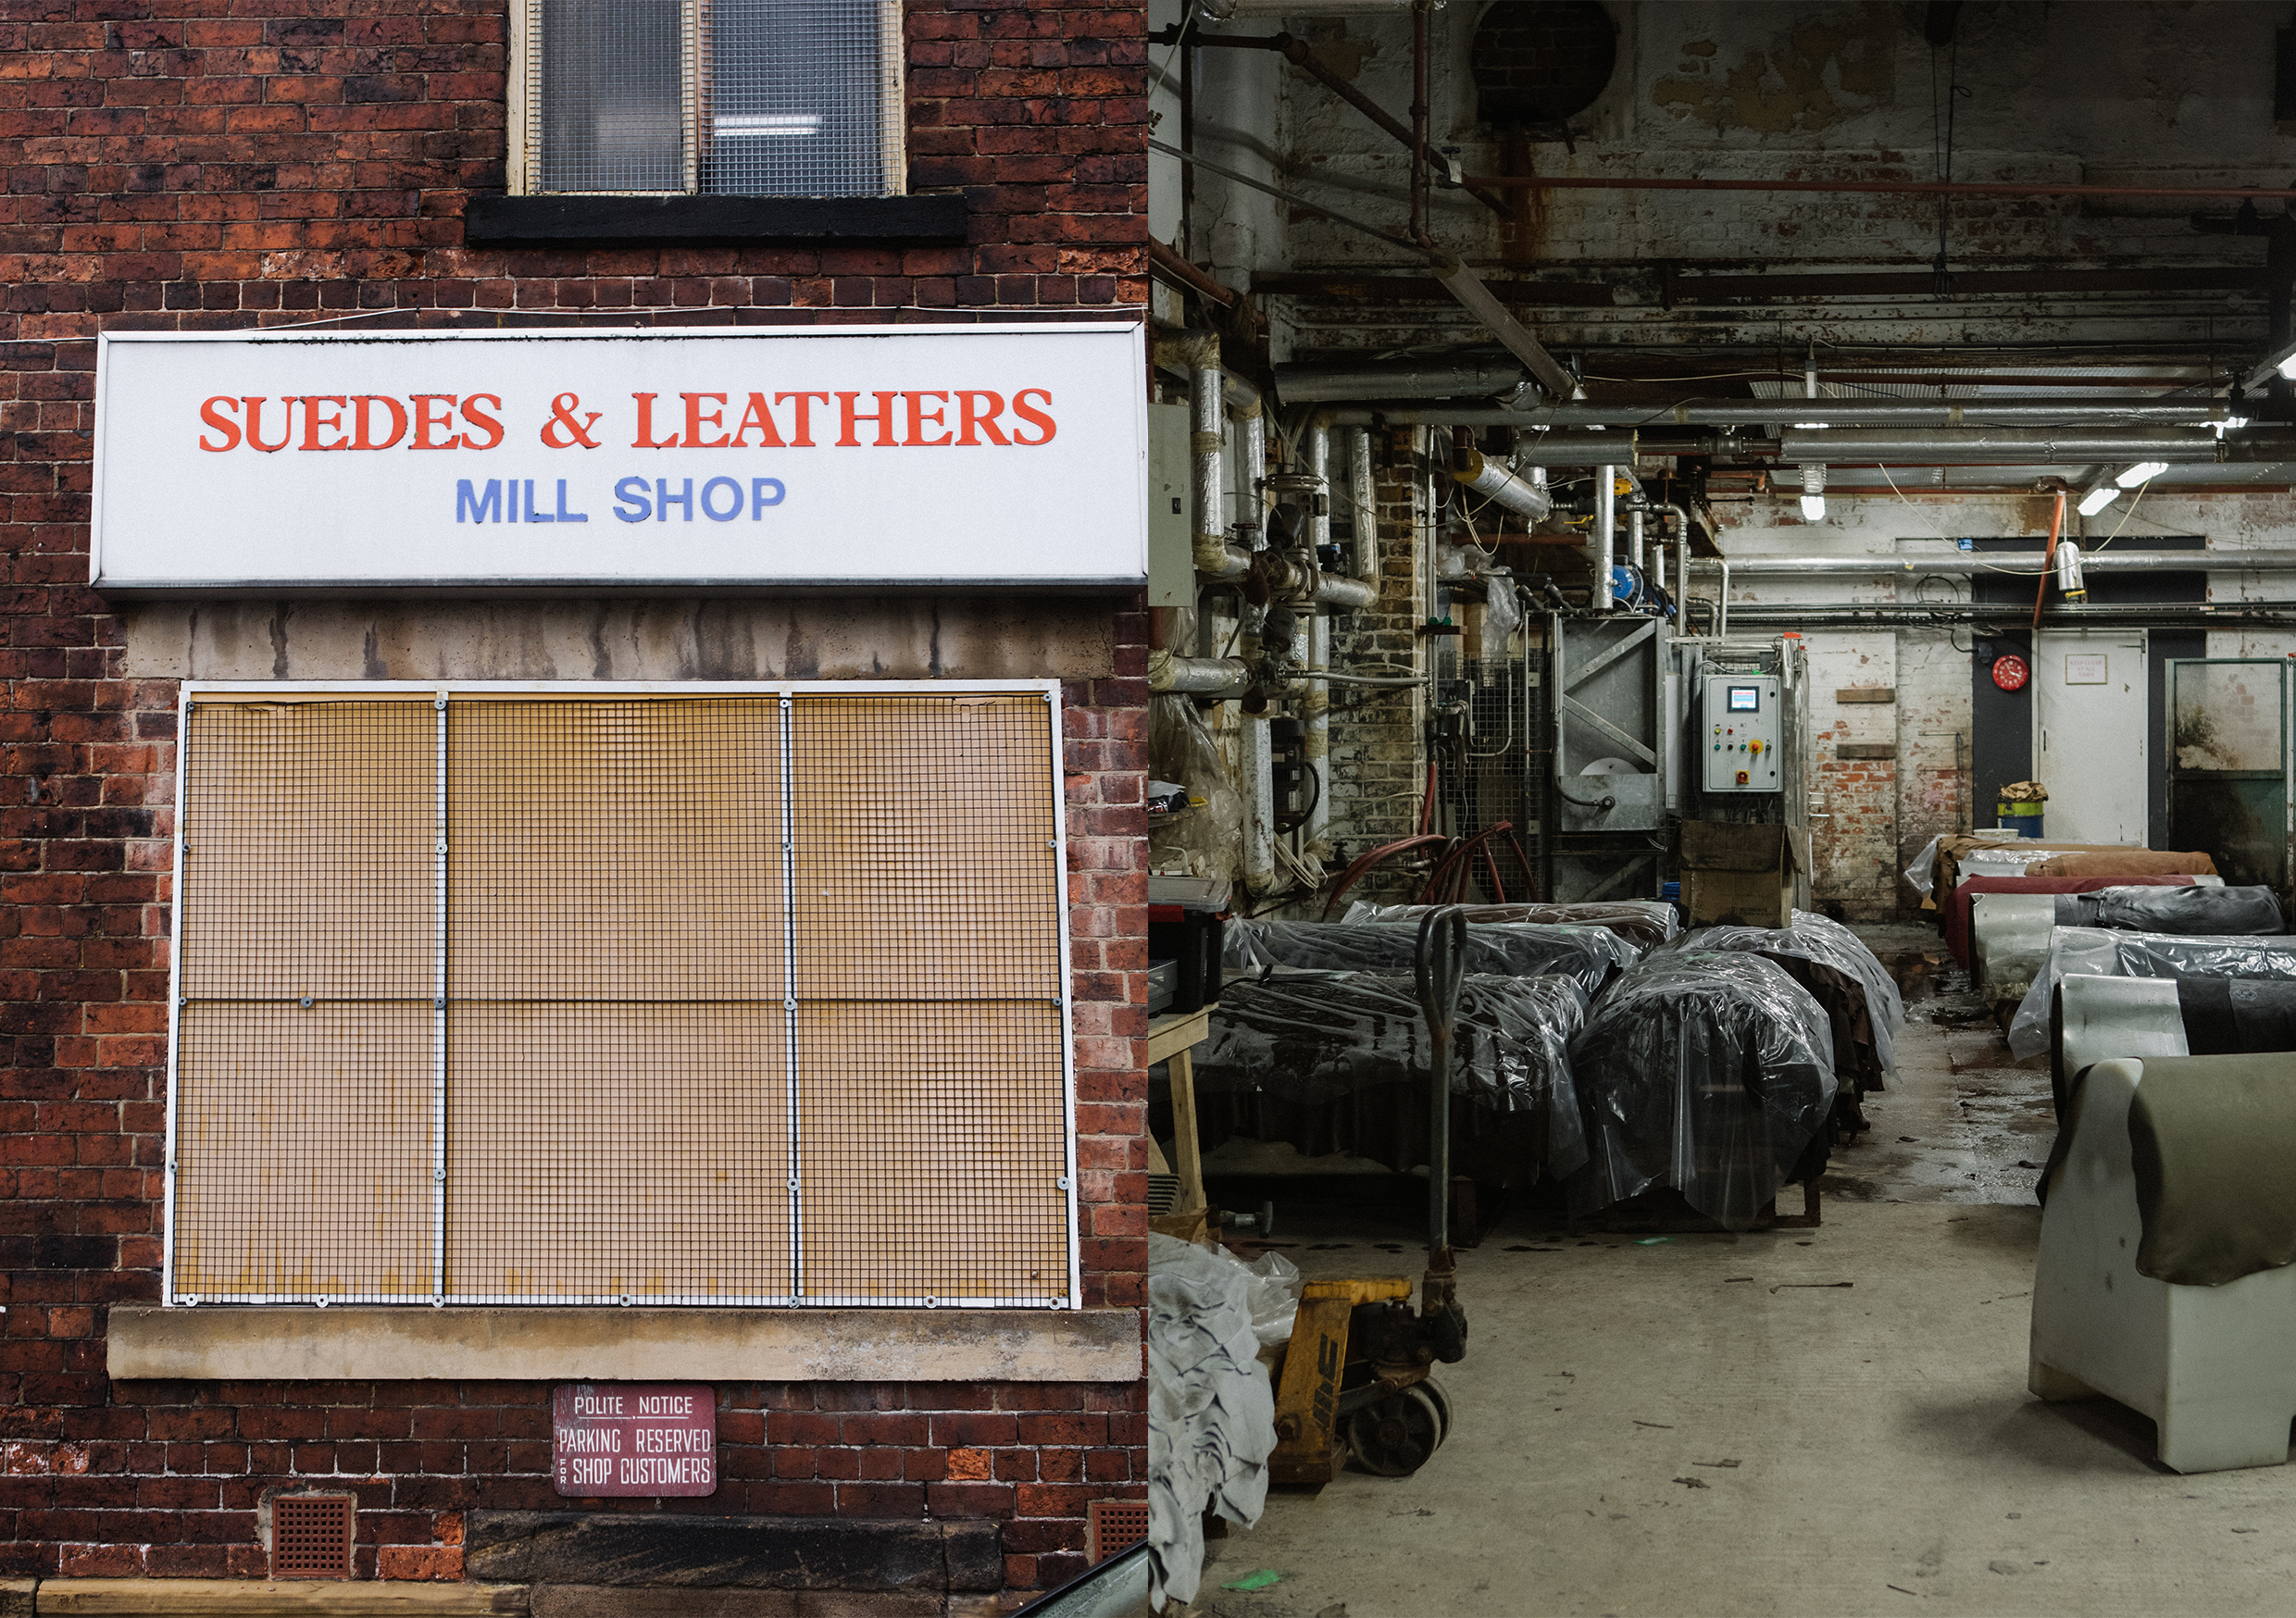 Outside and inside the C.F. Stead Tannery in Leeds